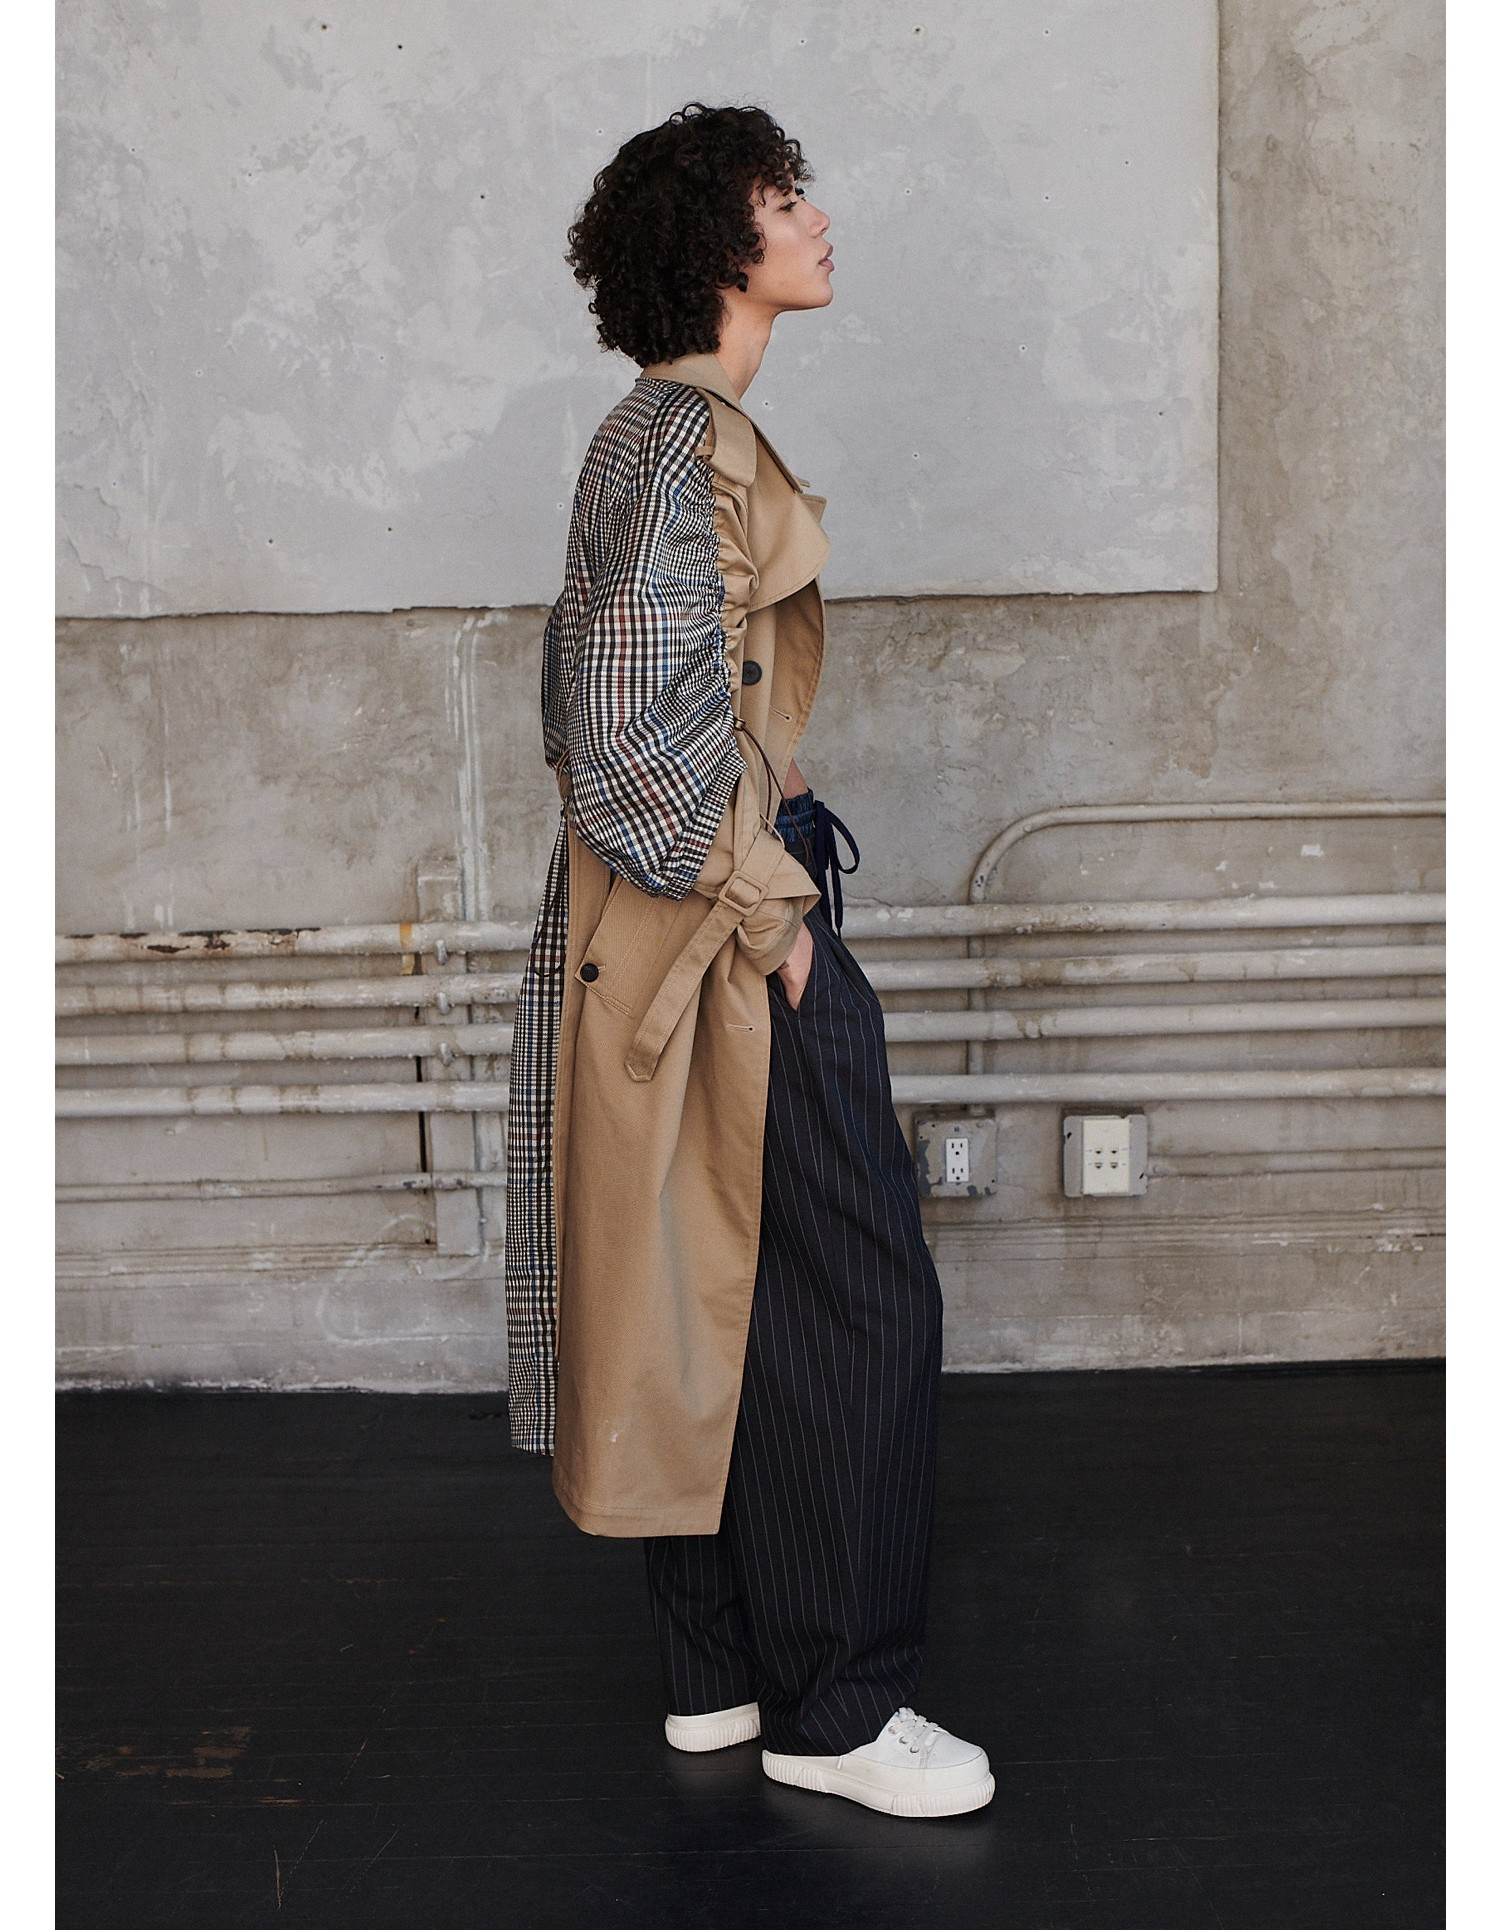 MONSE Drawstring Plaid Trench Coat on Model Side View